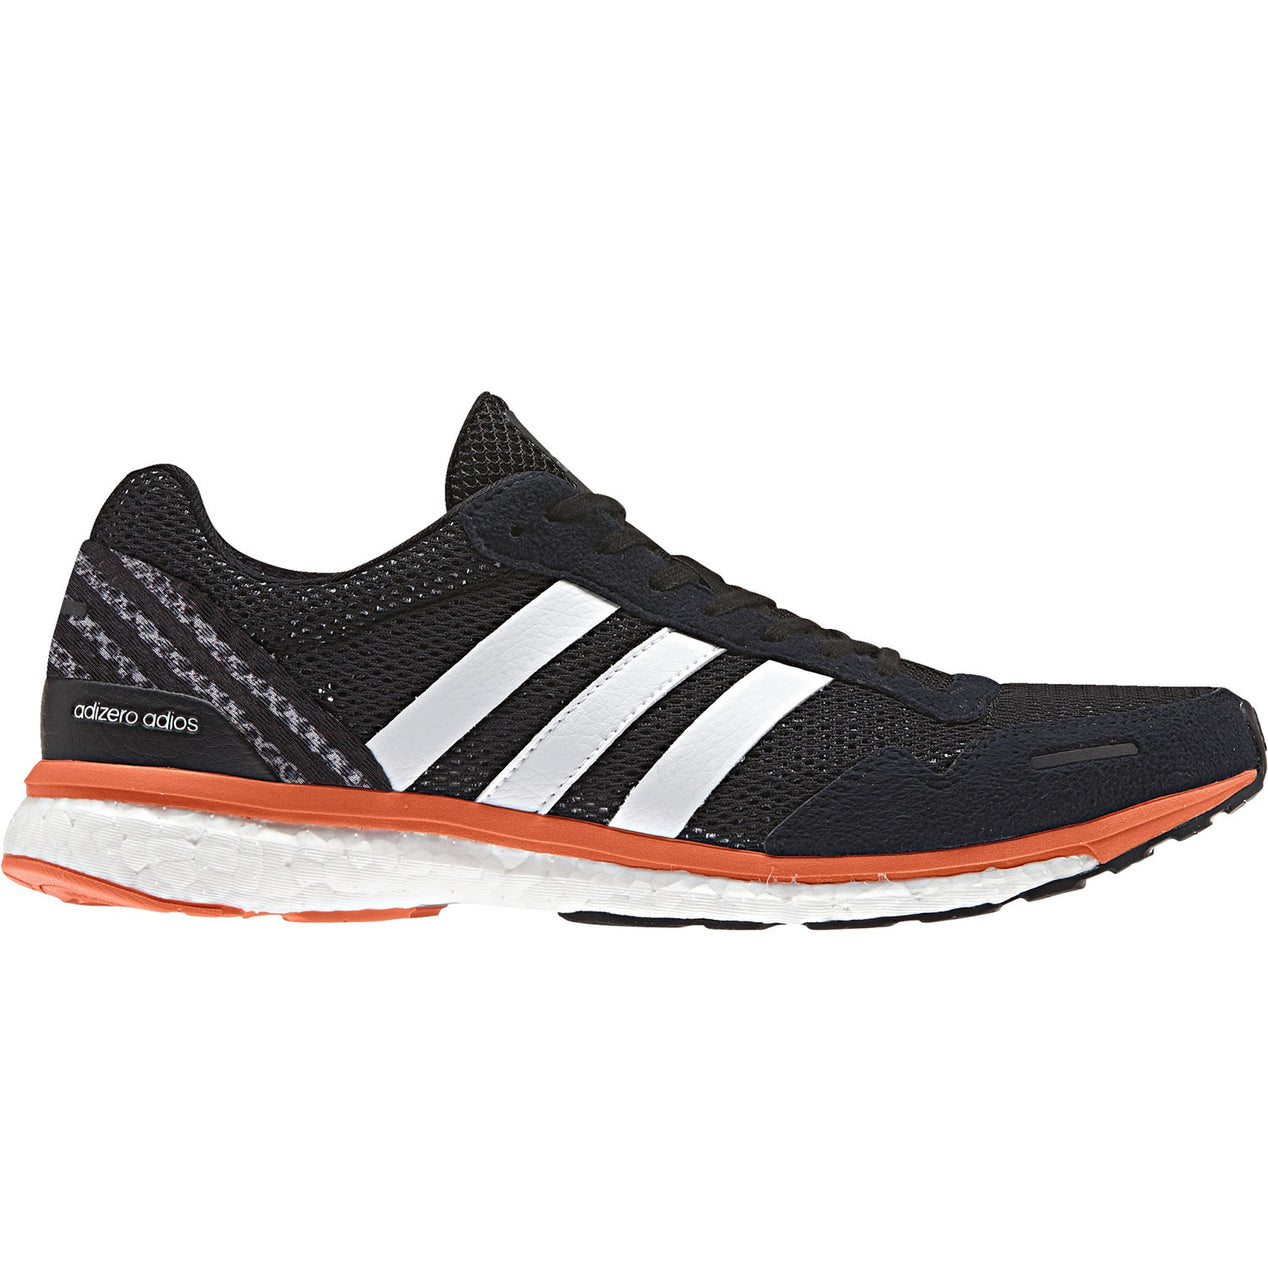 sneakers for cheap 43f9f 34e30 Adidas Mens Adizero Adios 3 Running Shoes